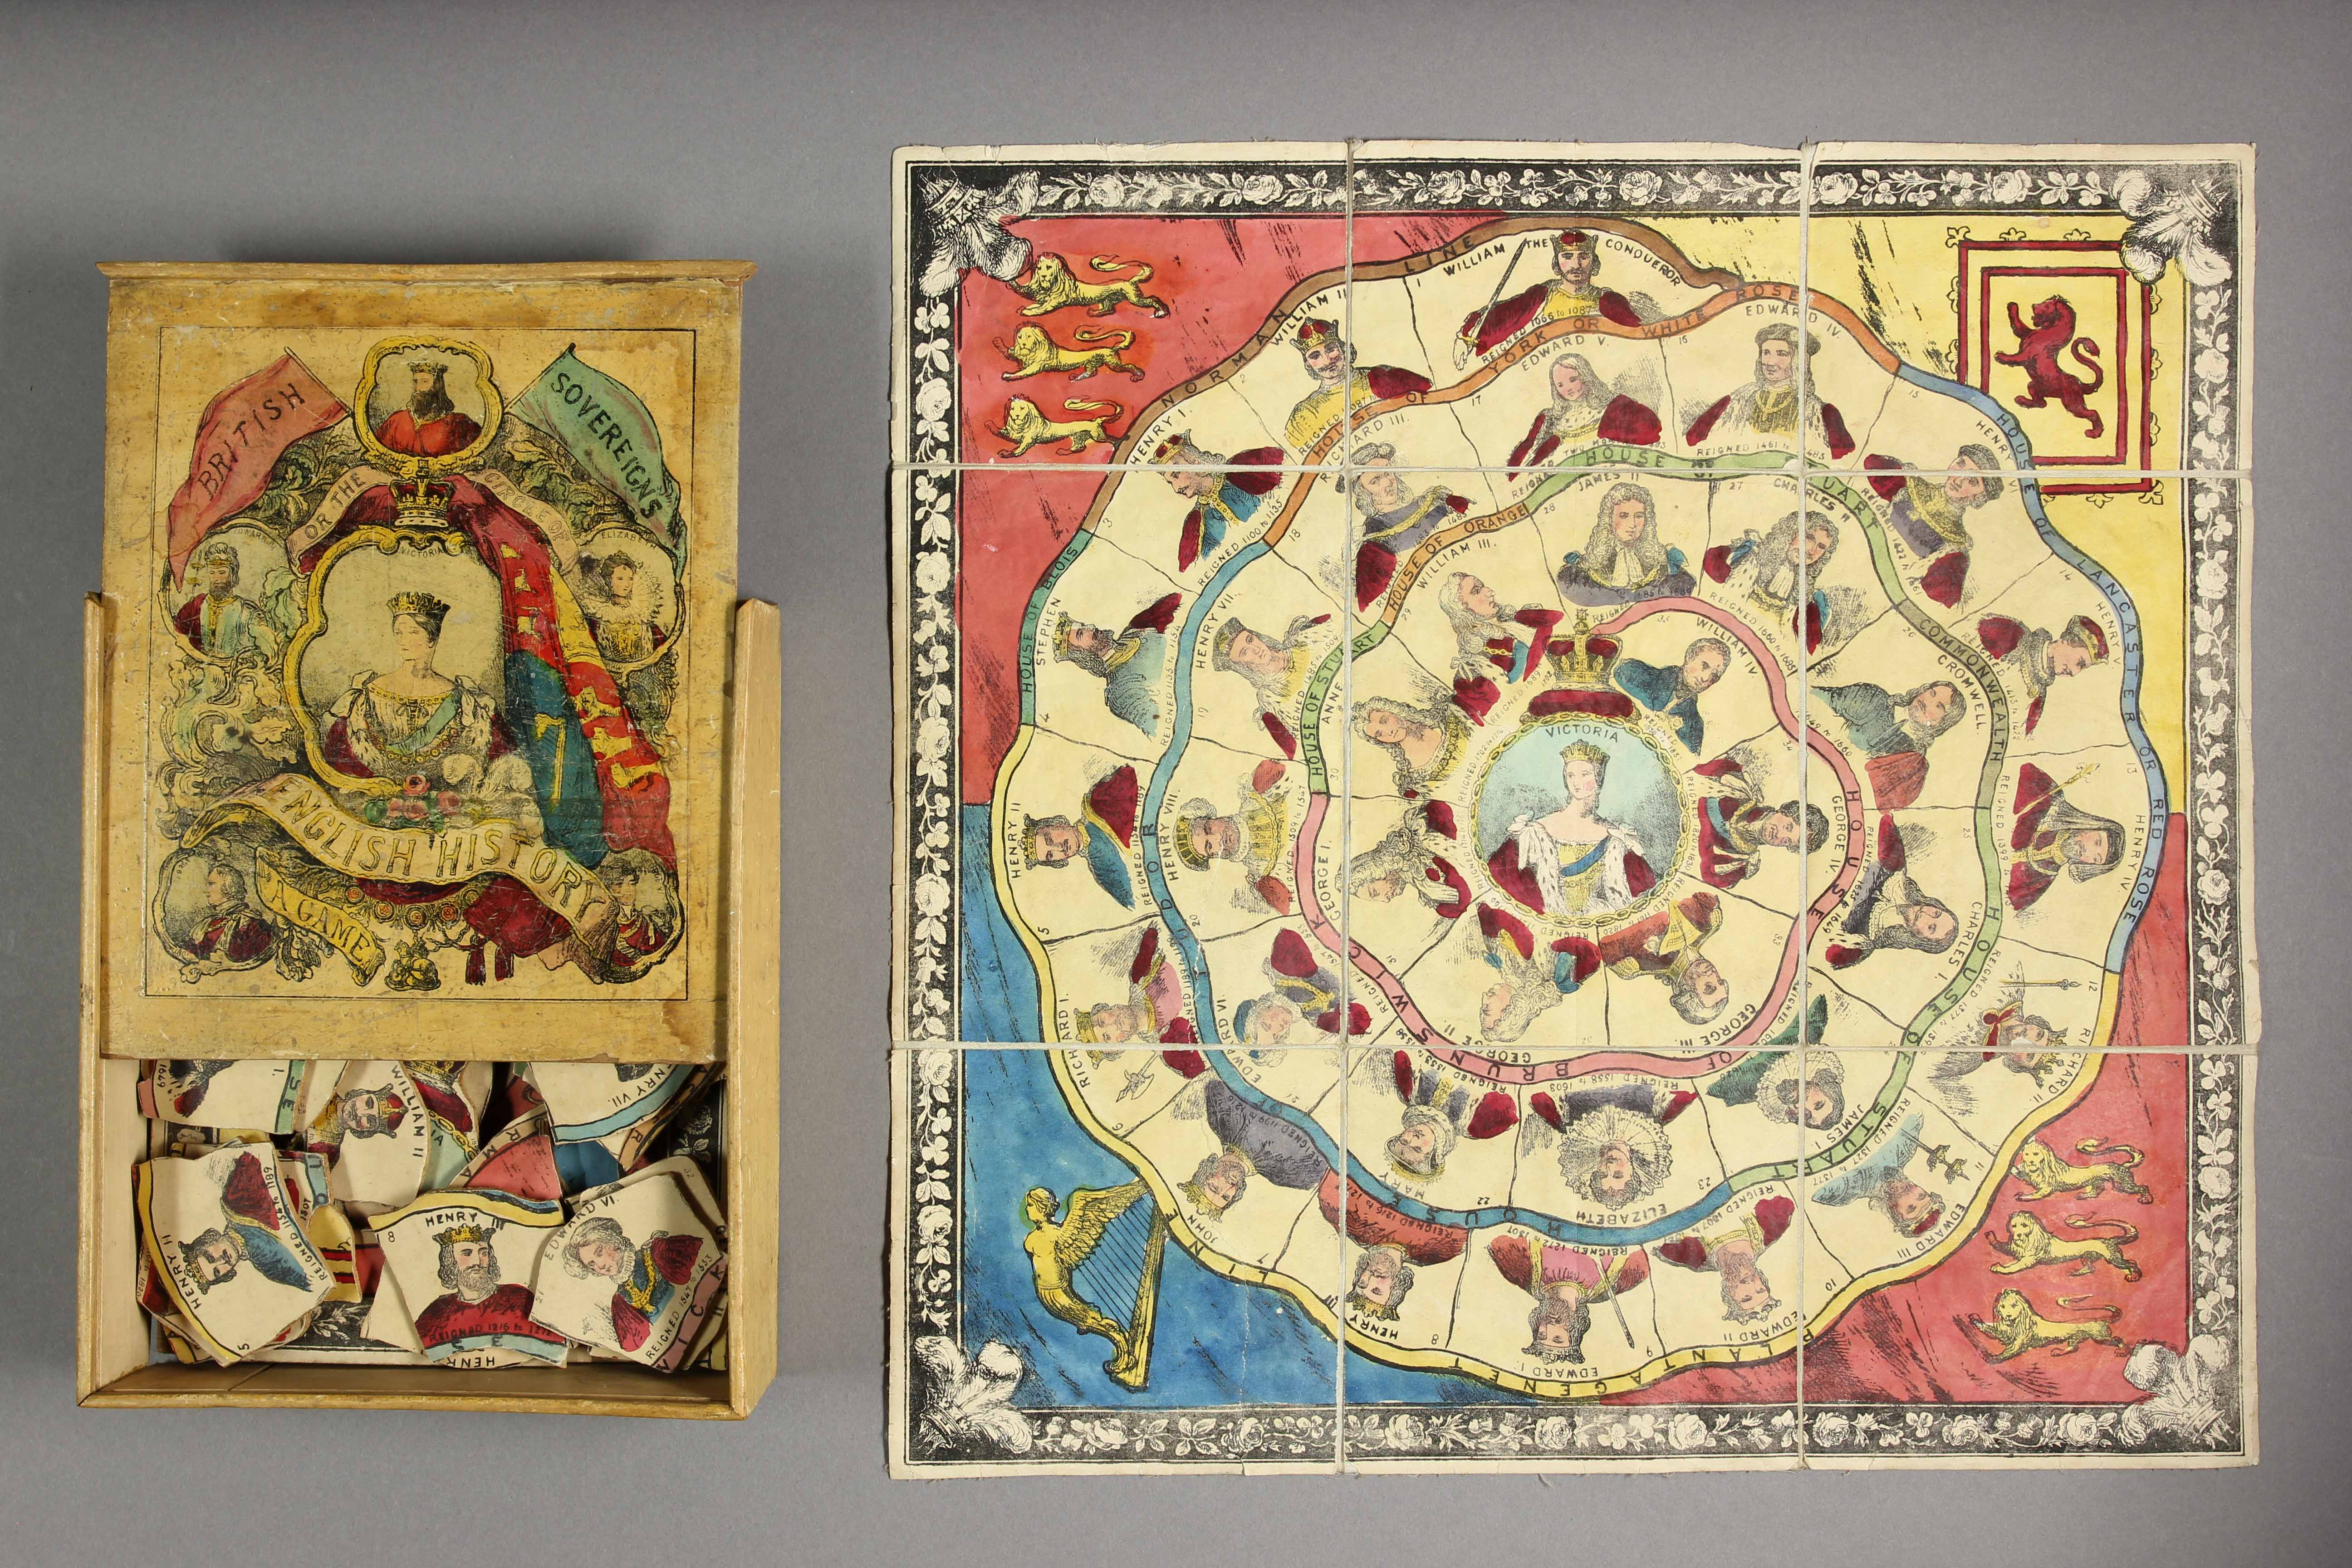 Circle of British History (Box title is British sovereign), Ogilvy, c. 1850. Dissected puzzle, box and guide sheet